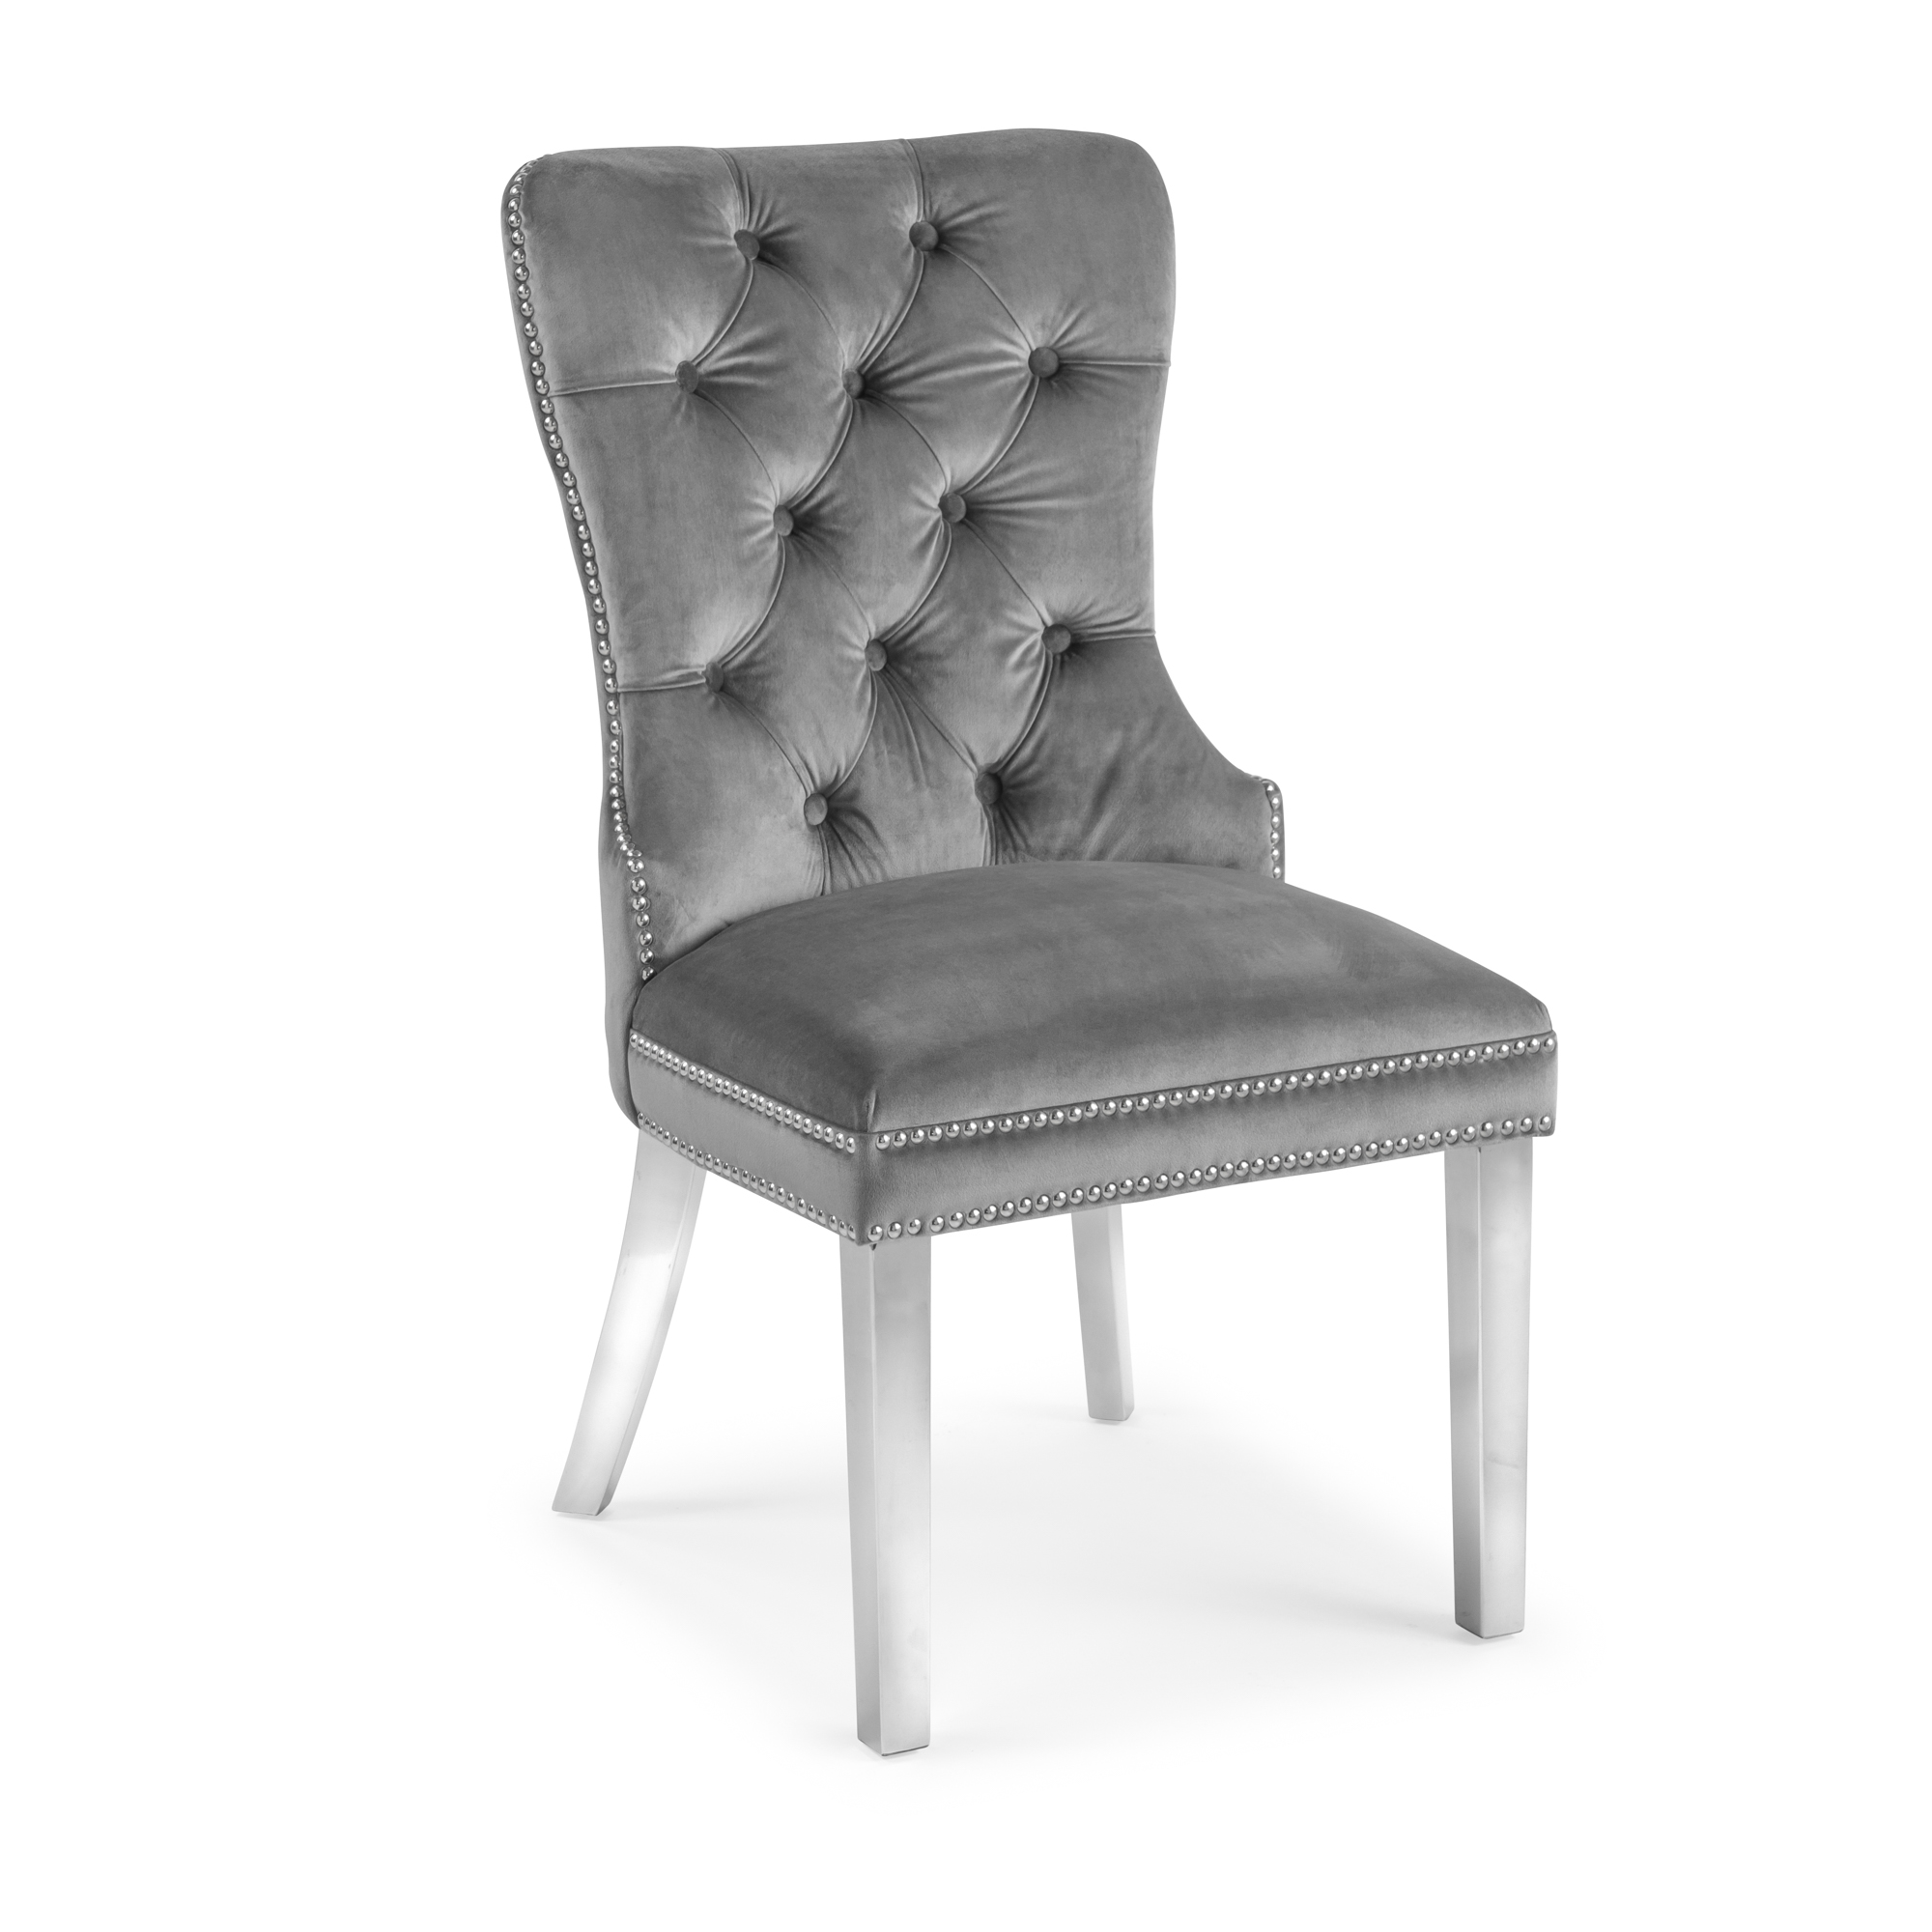 Hale Grey Brushed Velvet Dining Chair with Polished Steel Legs – Set of